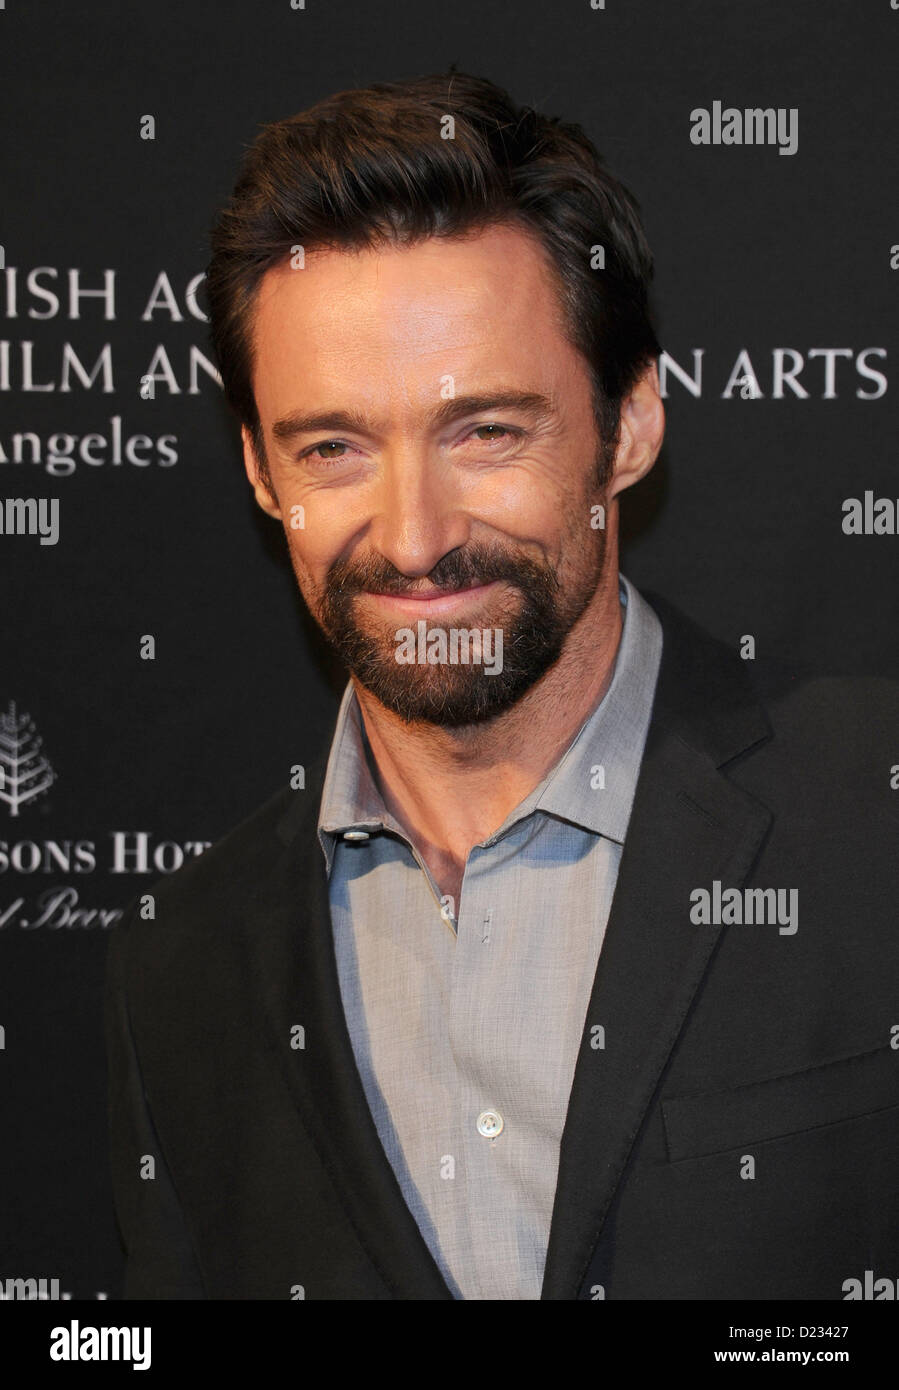 Hugh Jackman arrives at the BAFTA awards season tea party in Beverly Hills, America, January 12th 2013 - Stock Image